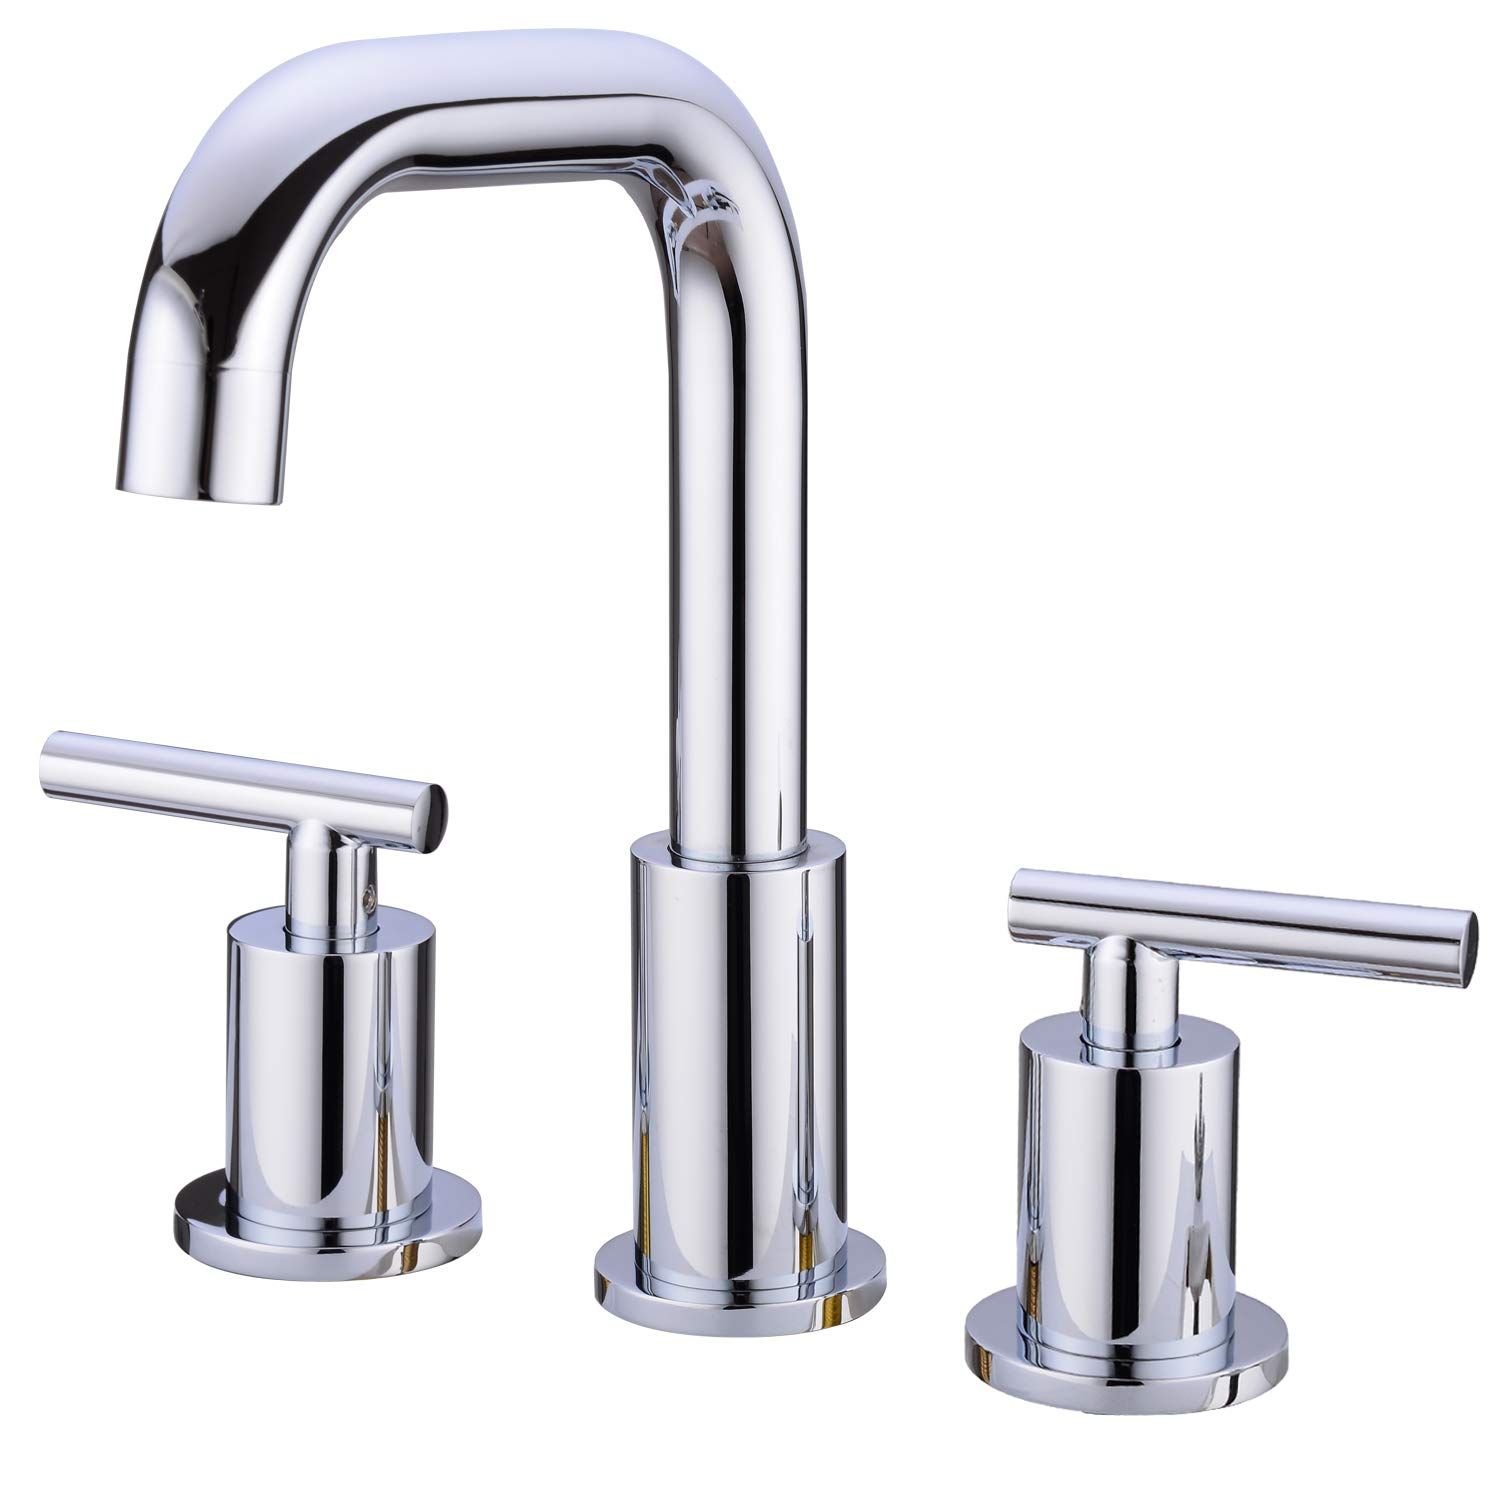 Trustmi Two Handle High Arc 8 Inch Widespread Bathroom Sink Faucet With Cupc Faucet Supply Lines Matte Sink Faucets Bathroom Sink Faucets Basin Sink Bathroom